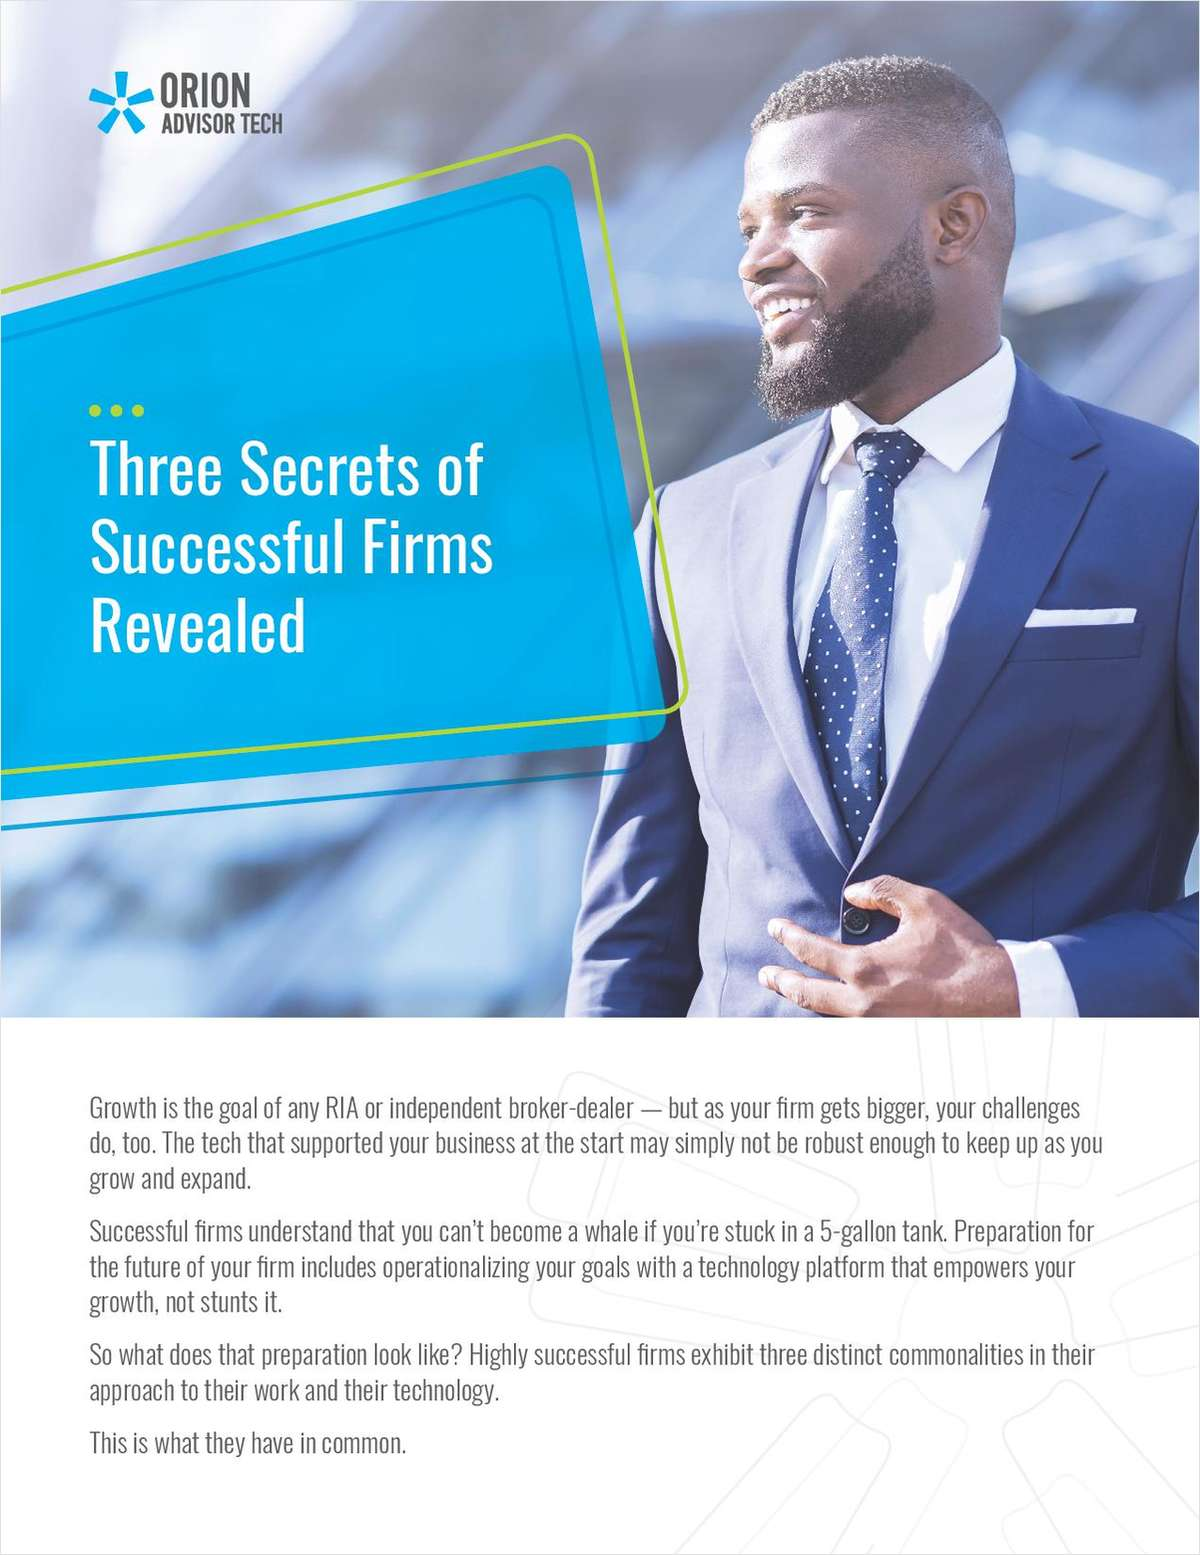 Three Secrets of Successful Firms Revealed